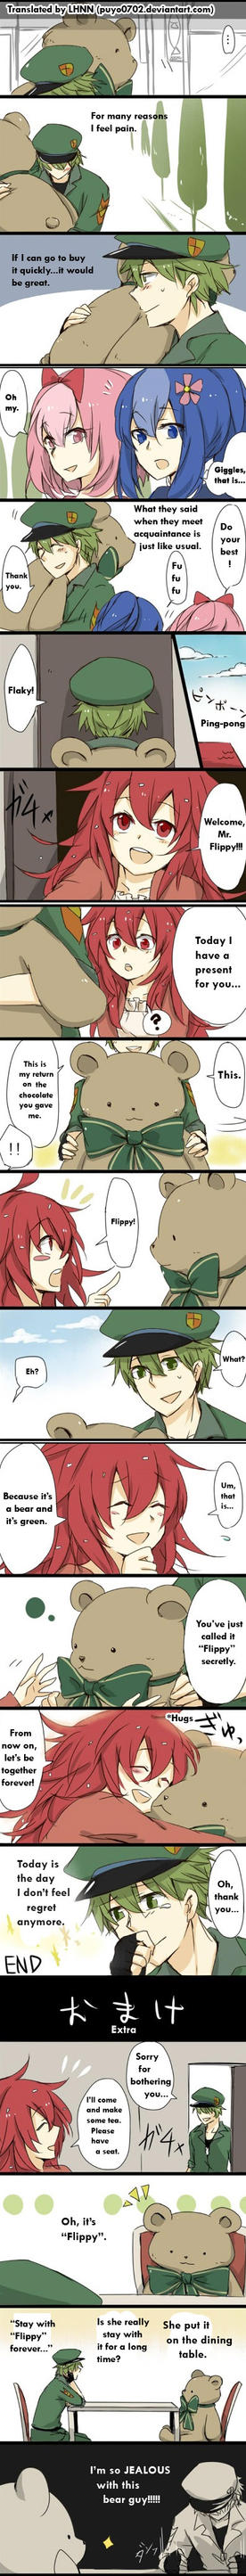 HTF doujinshi translation 26: Bear rival by minglee7294